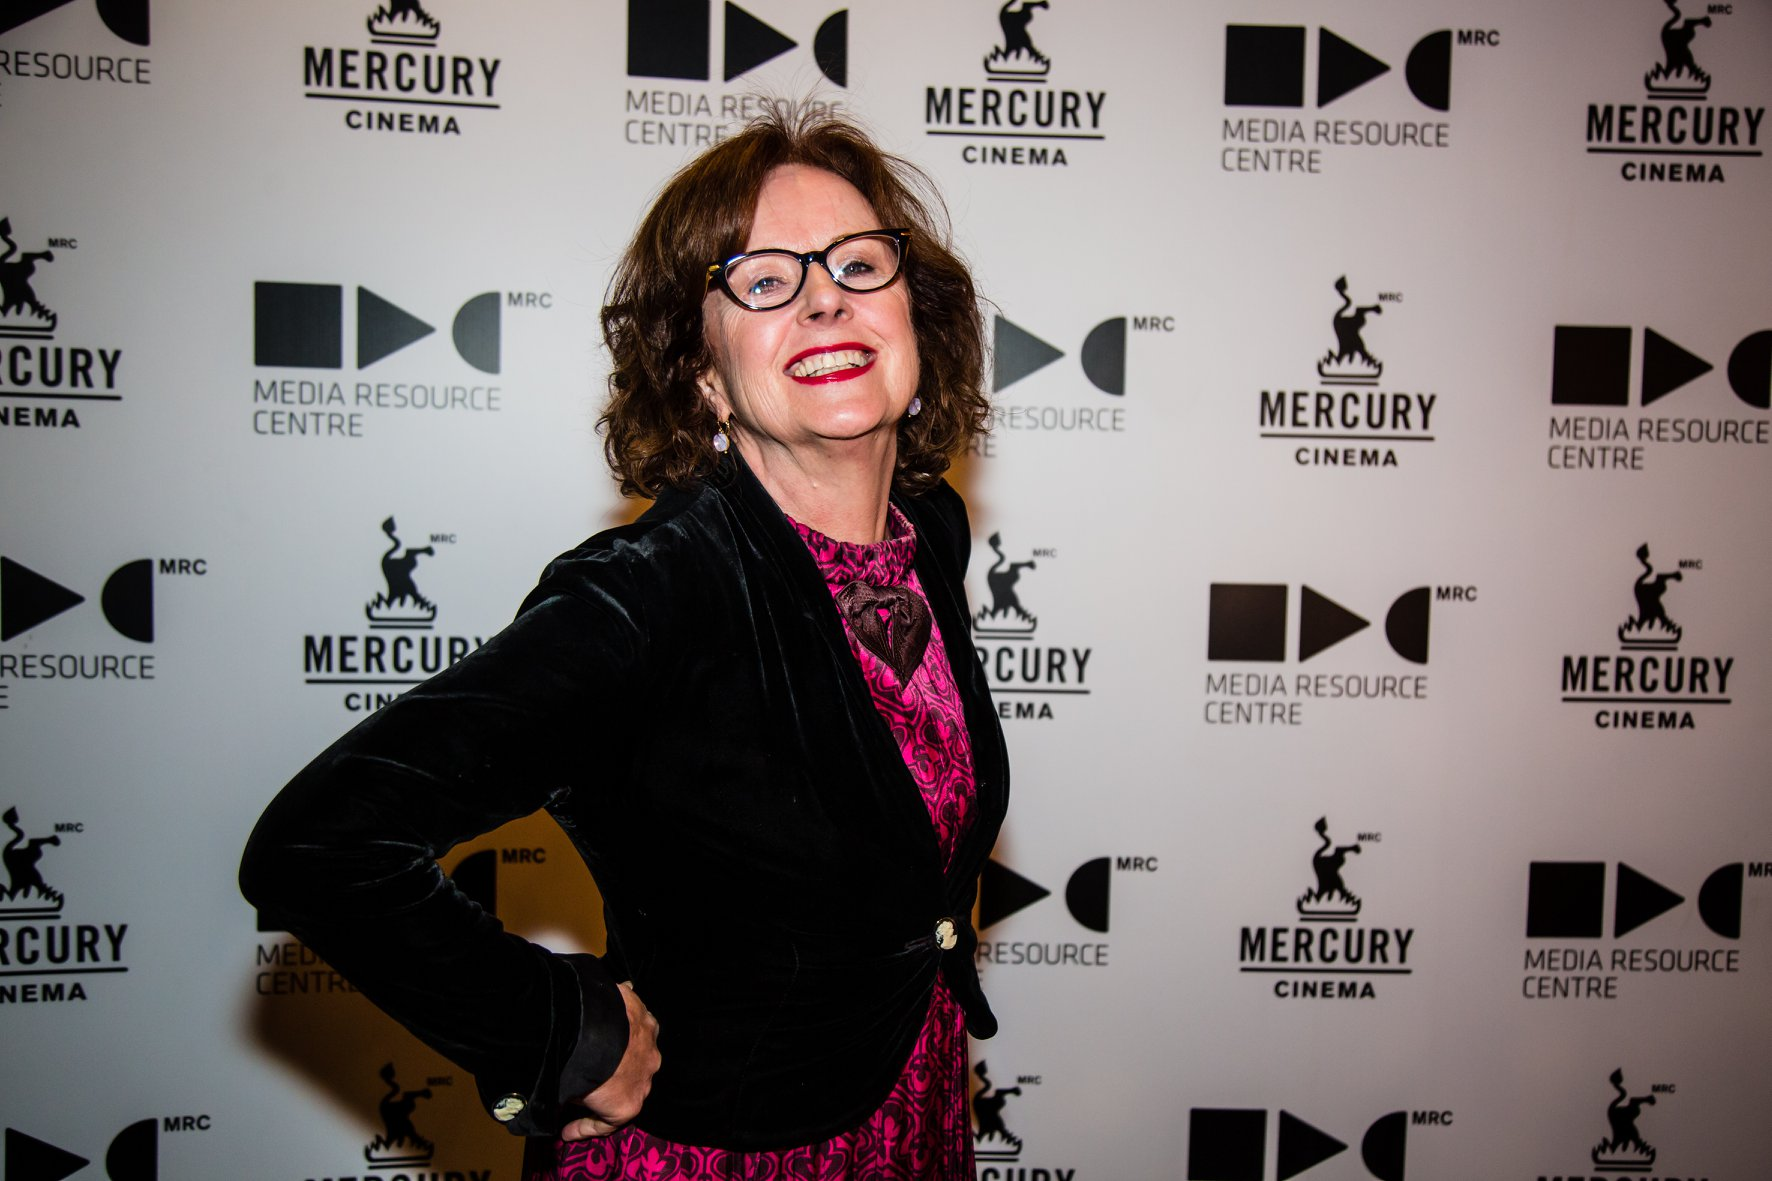 Angela WINS the 2019 Mercury Award